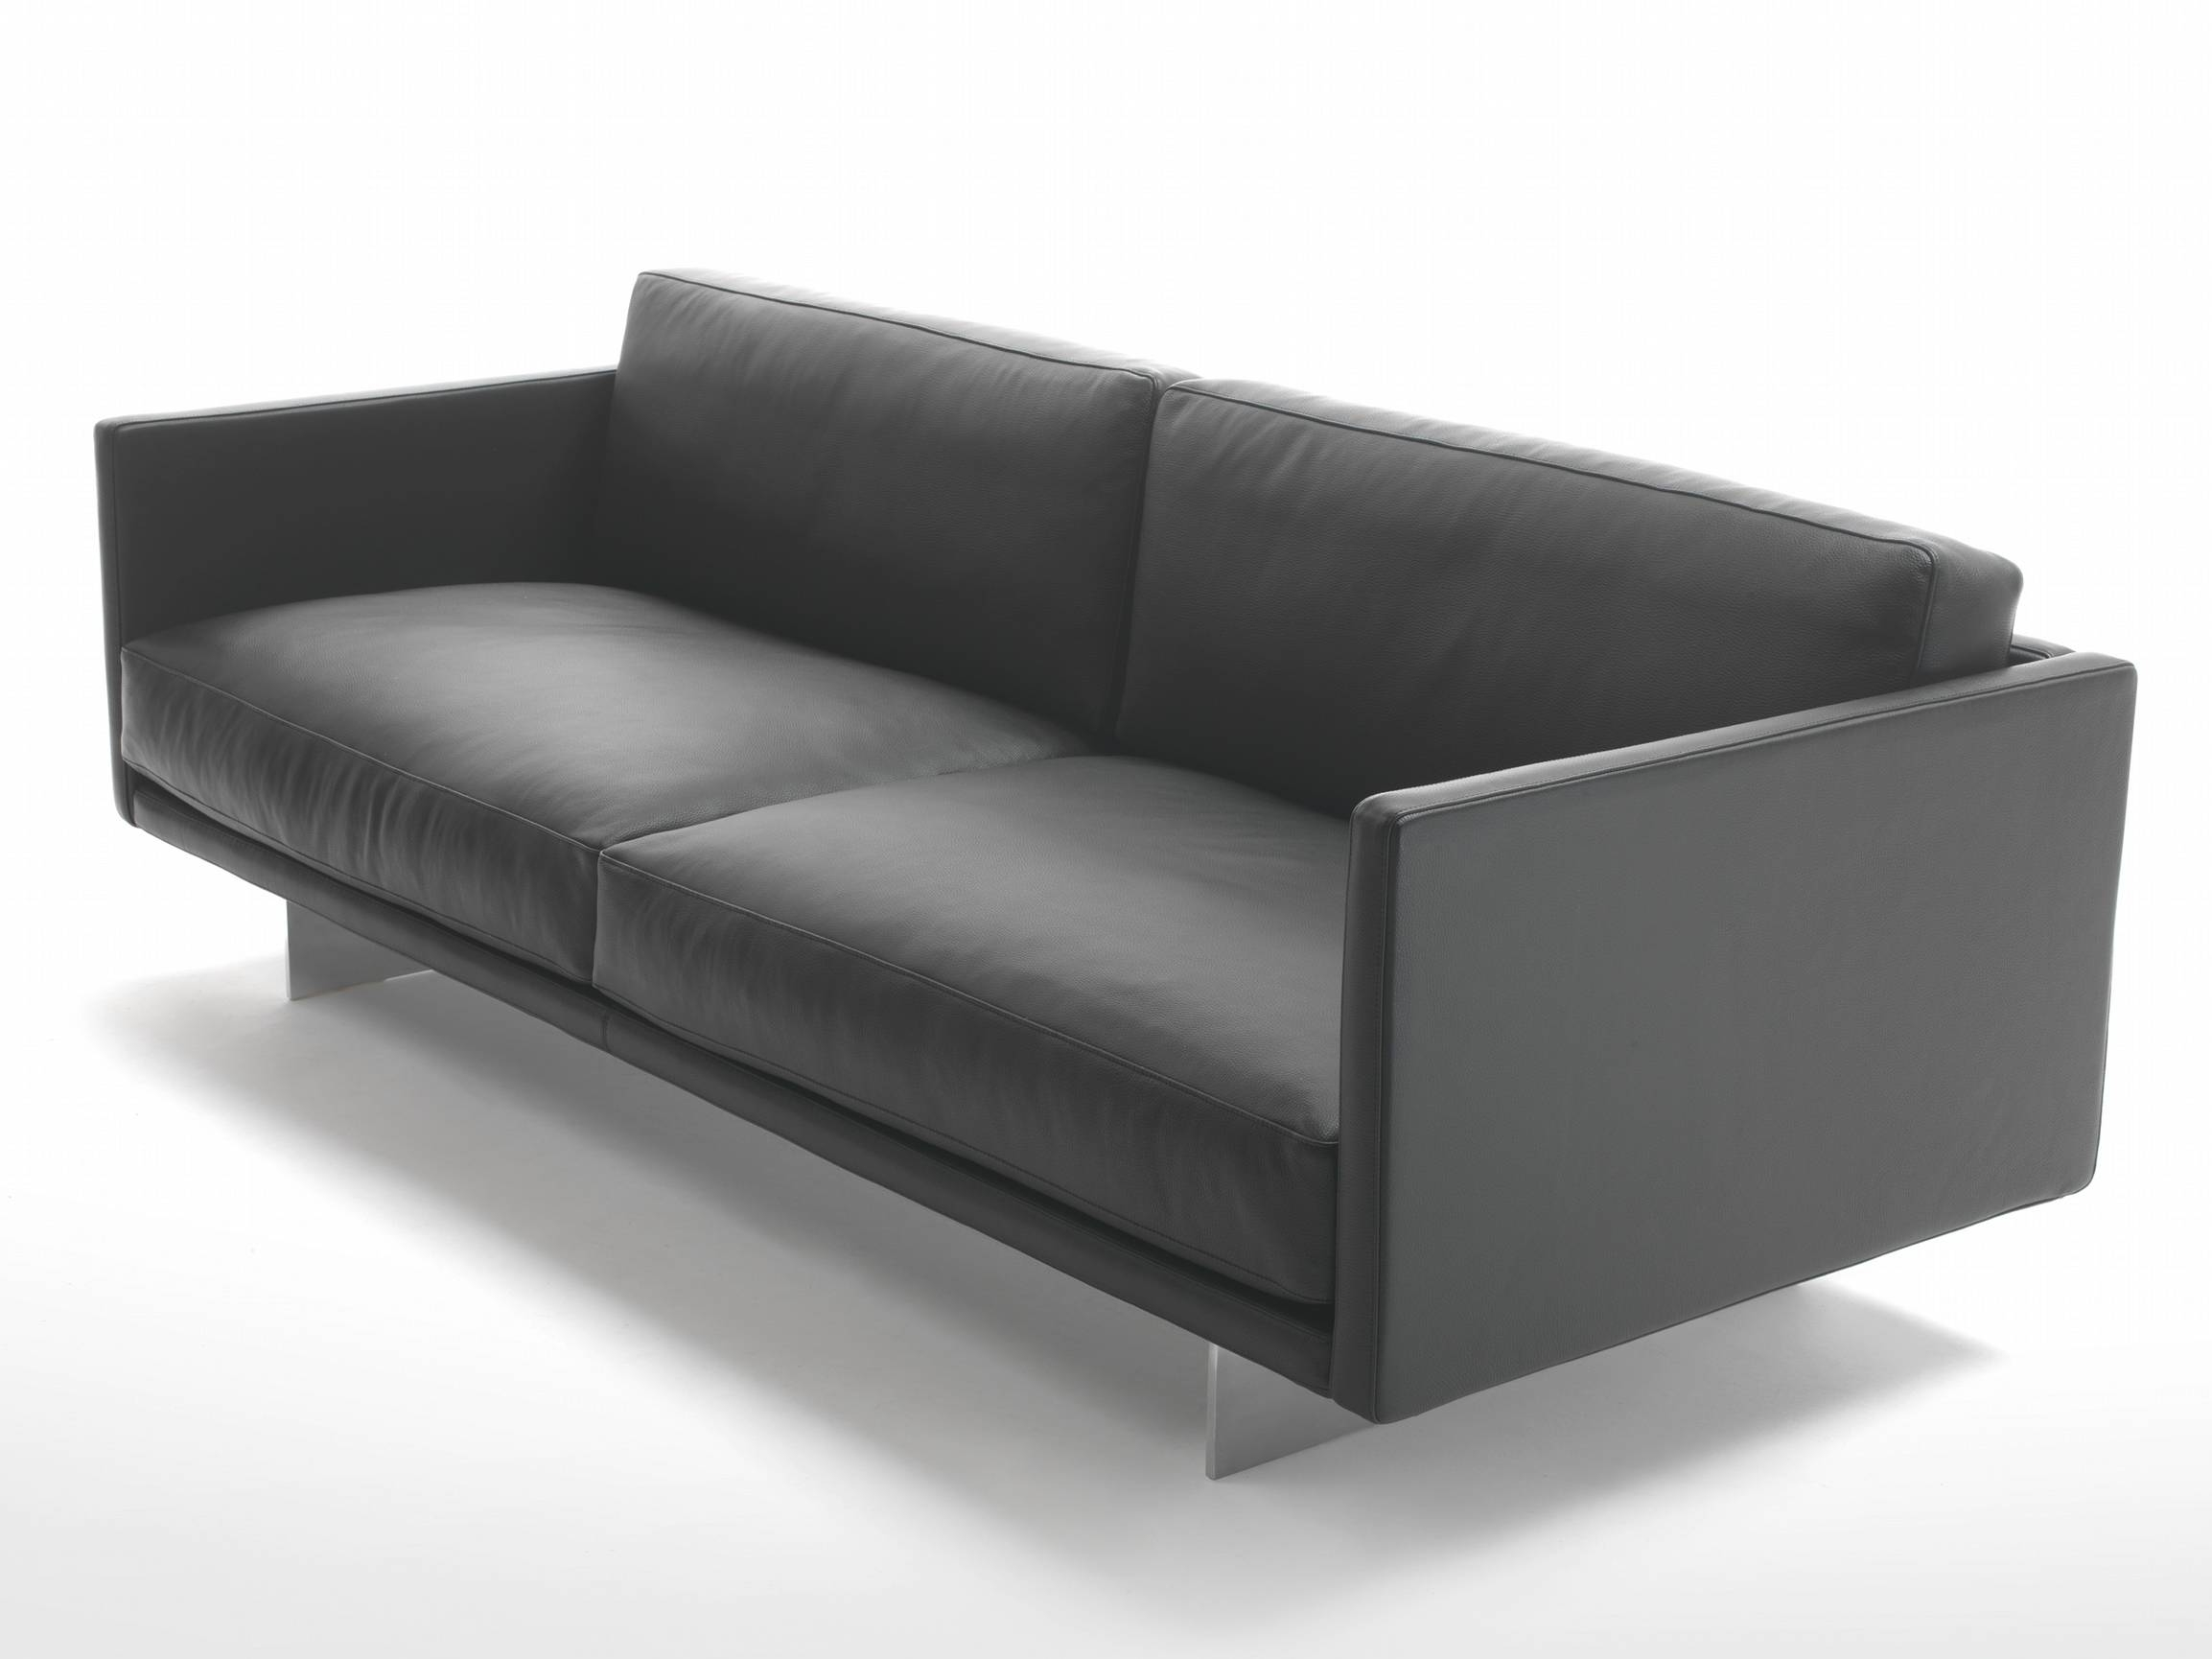 Beautiful Sofa Leather Cover 35 Living Room Sofa Ideas With Sofa pertaining to Simple Sofas (Image 3 of 15)